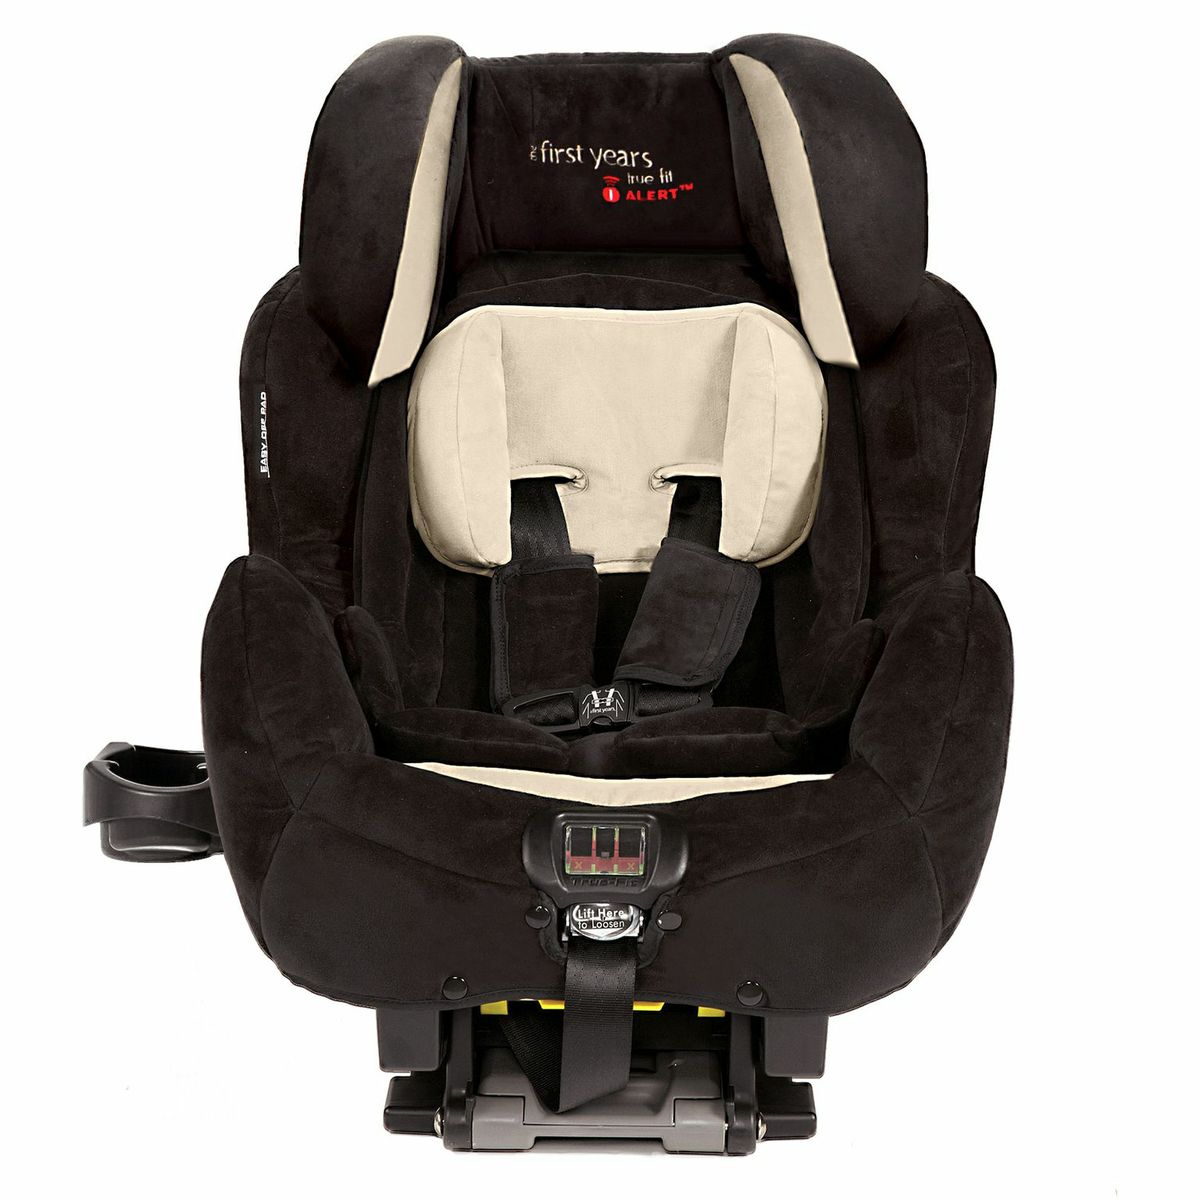 The Smartest Car Seat Ever - The Naughty Mommy